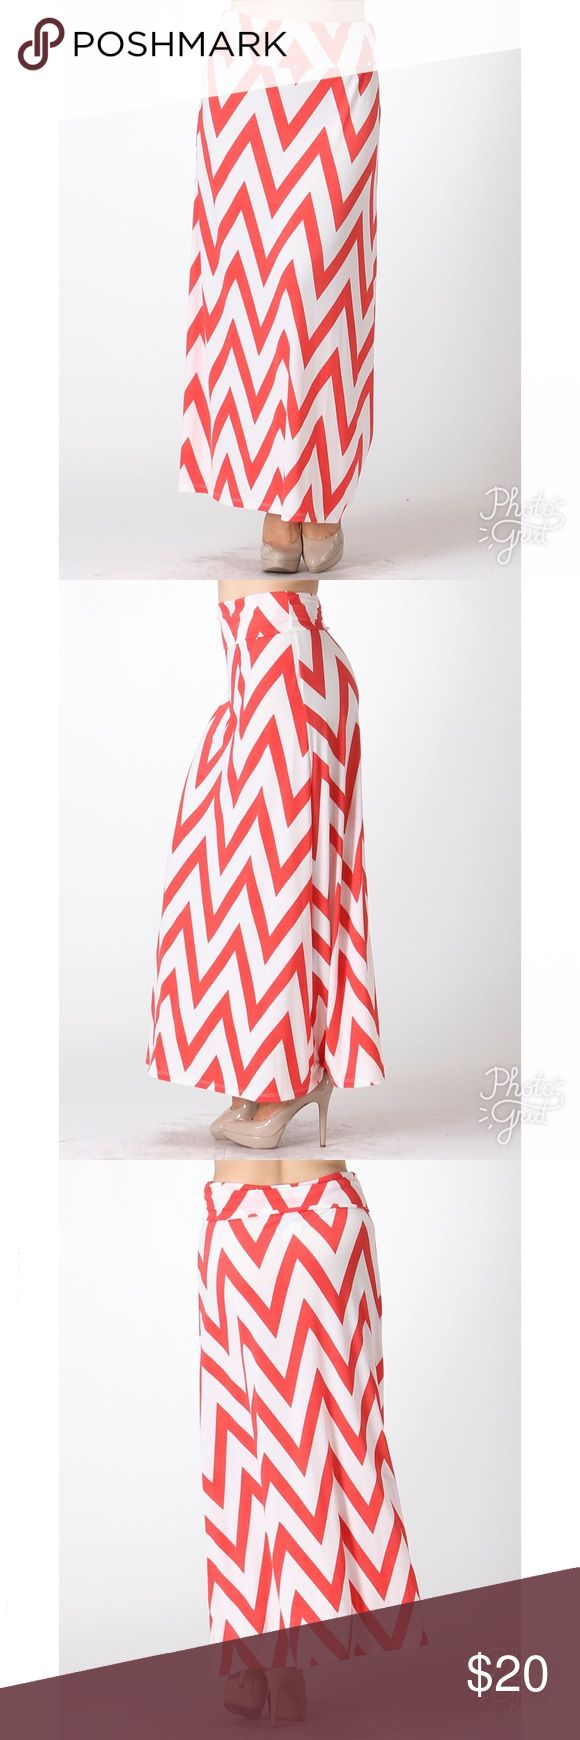 "🚨 JUST IN - limited 🚨 Chevron Maxi Skirt 🔥HOT 💃🏼 SEXY 👗 Maxi Skirt  LENGTH:  44""   The skirt is FOLDABLE from the waist.  95% Polyester, 5 % Spandex  🌊The material feels very fresh  Ships 1-2 business day, I AM A FAST SHIPPER 🛫 YES, these are the real pictures of the item 💁🏻 BRAND NEW merchandise only  MADE IN USA! 🇺🇸 Add it to bundle to save more 🤑 Skirts Maxi"